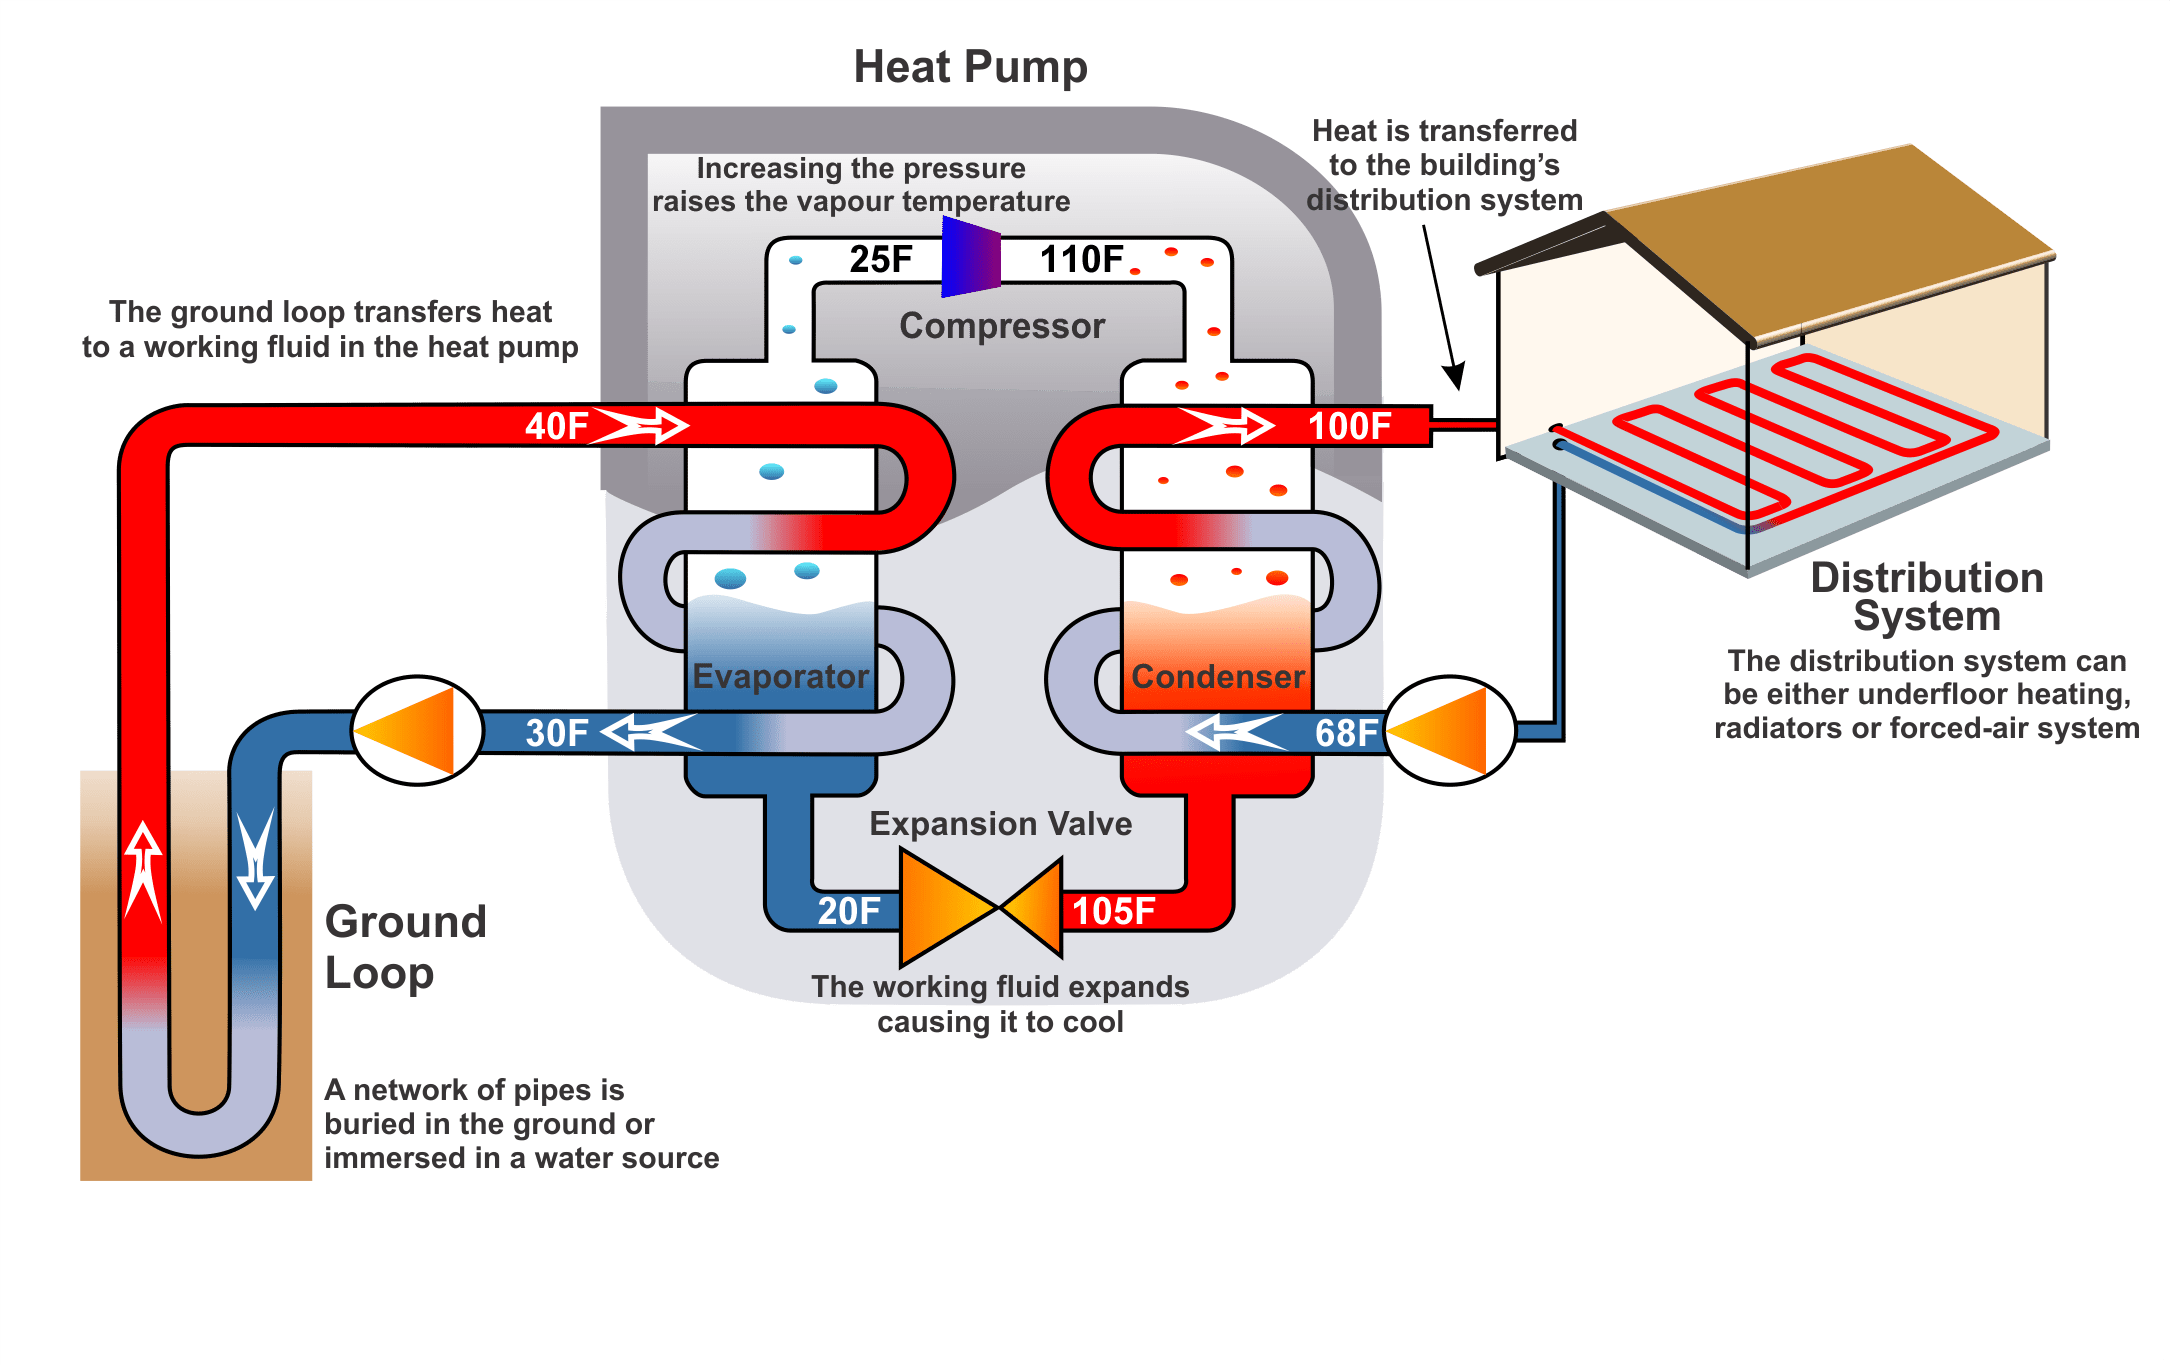 geothermal piping diagram wiring diagram for you water source heat pump operation diagram geothermal piping diagram [ 2170 x 1365 Pixel ]